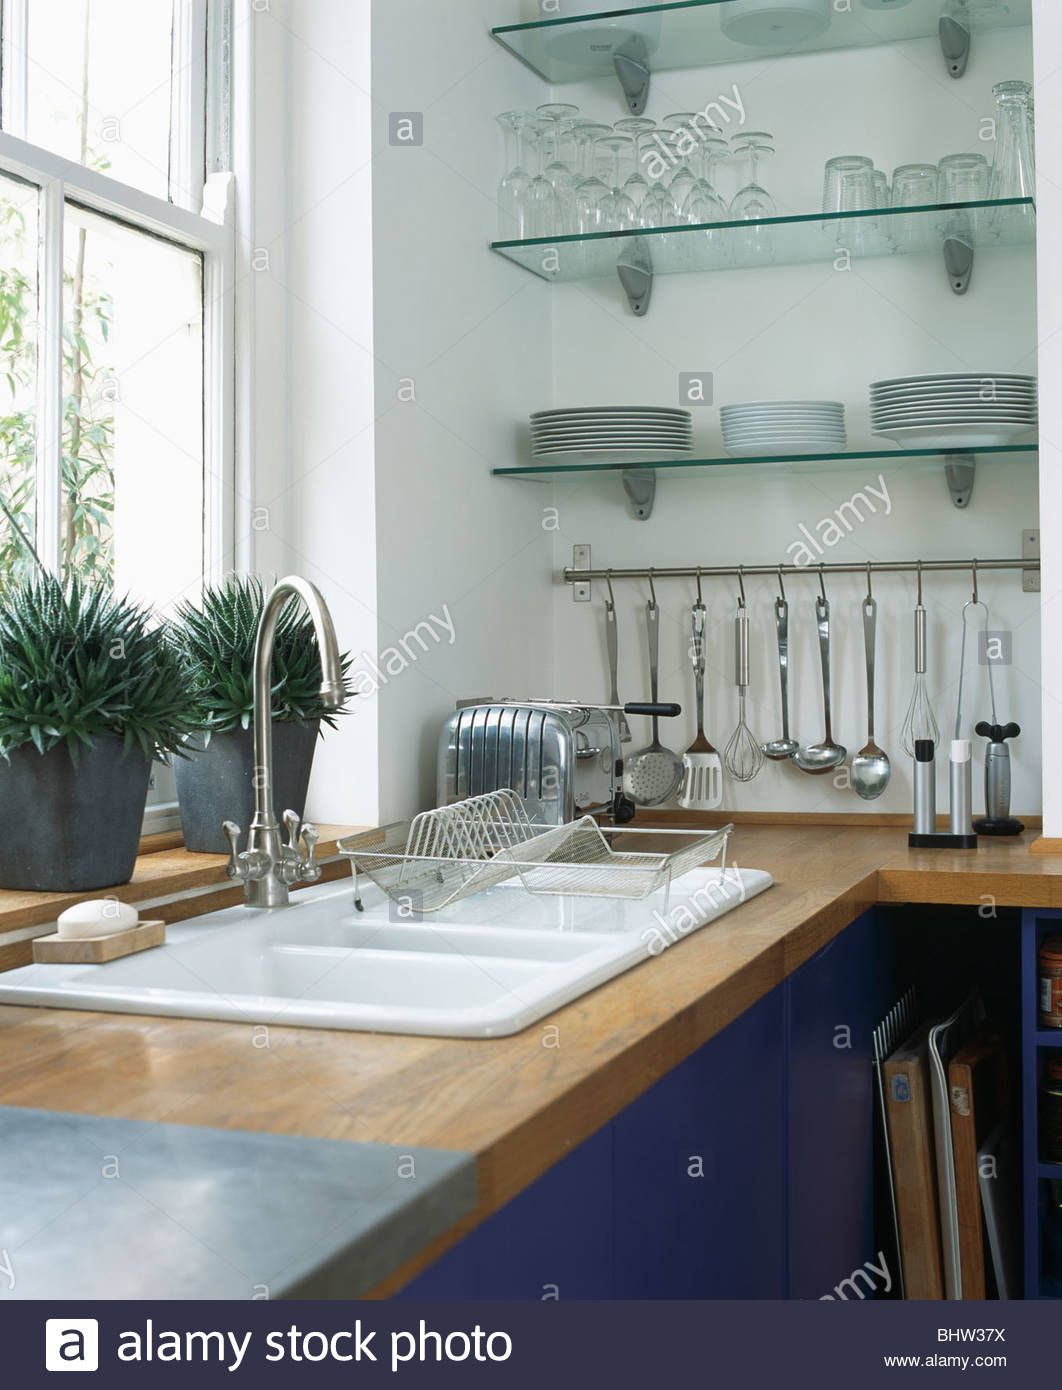 Trending The New Open Shelving The Identite Collective Glass Kitchen Cabinets Marble Countertops Kitchen Framed Kitchen Cabinets